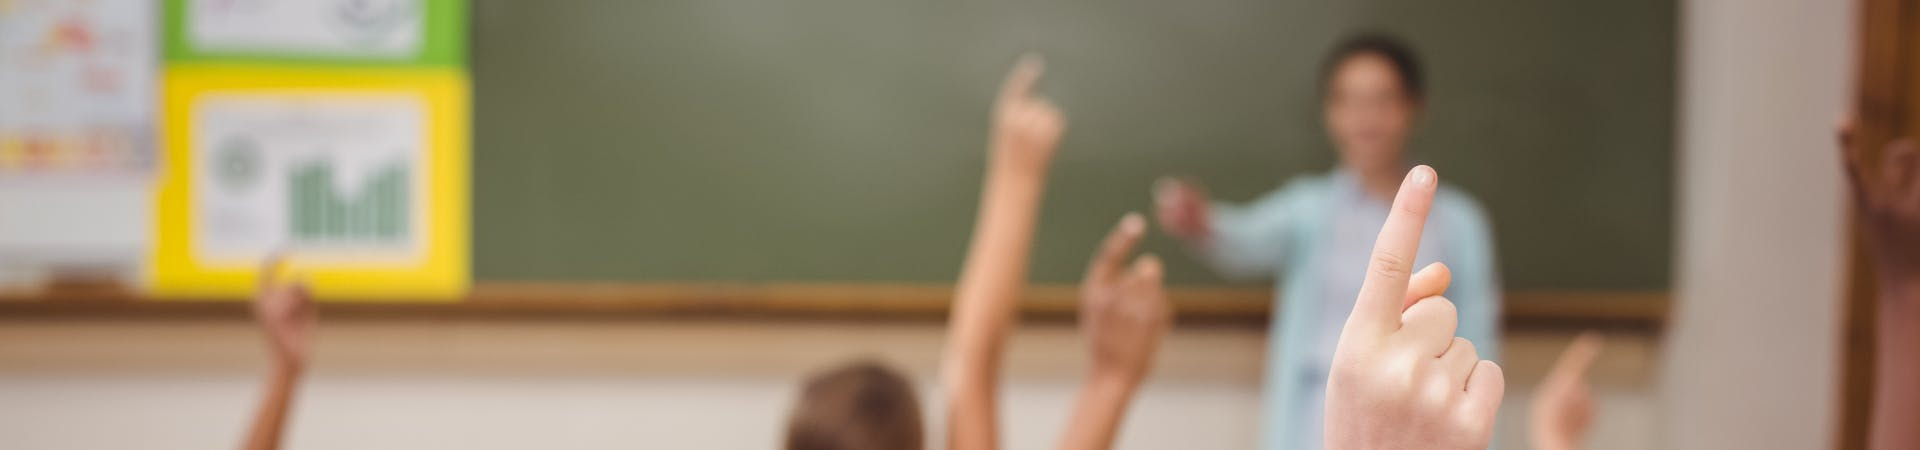 Children with their hands up in class